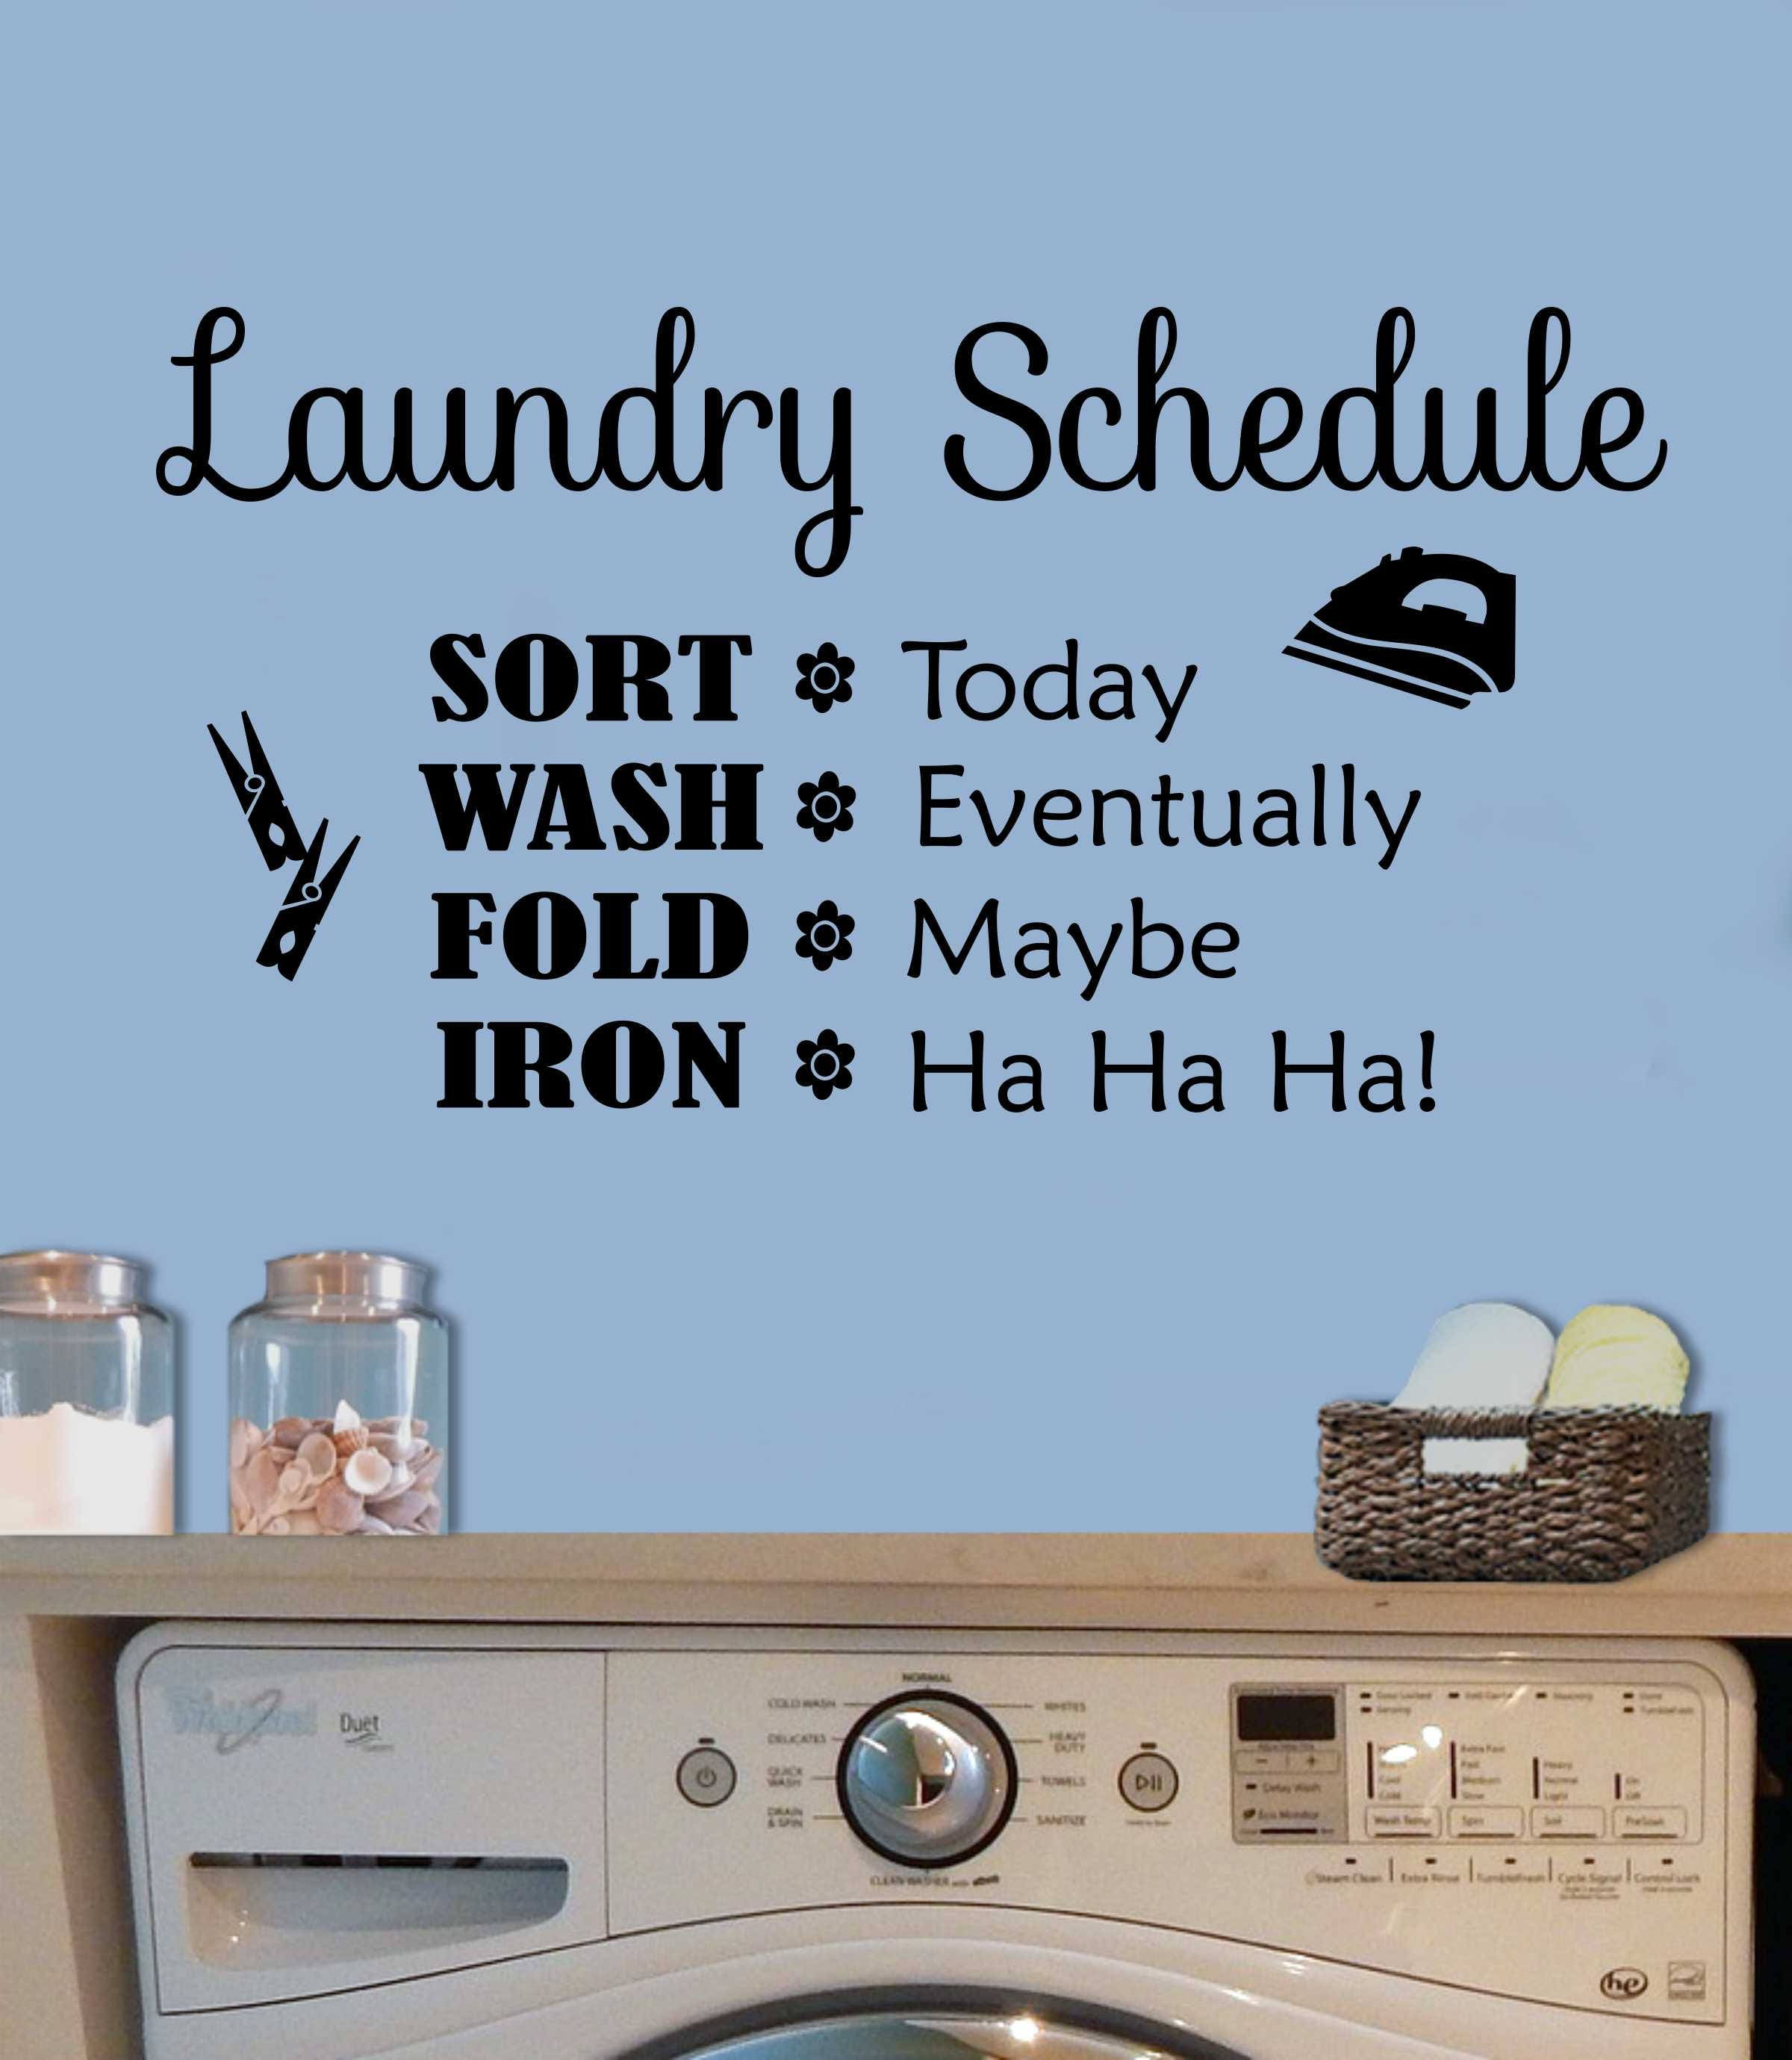 Laundry Room Quotes For Walls New Funny Laundry Room Schedule Quote Vinyl Wall Lettering Vinyl Design Decoration